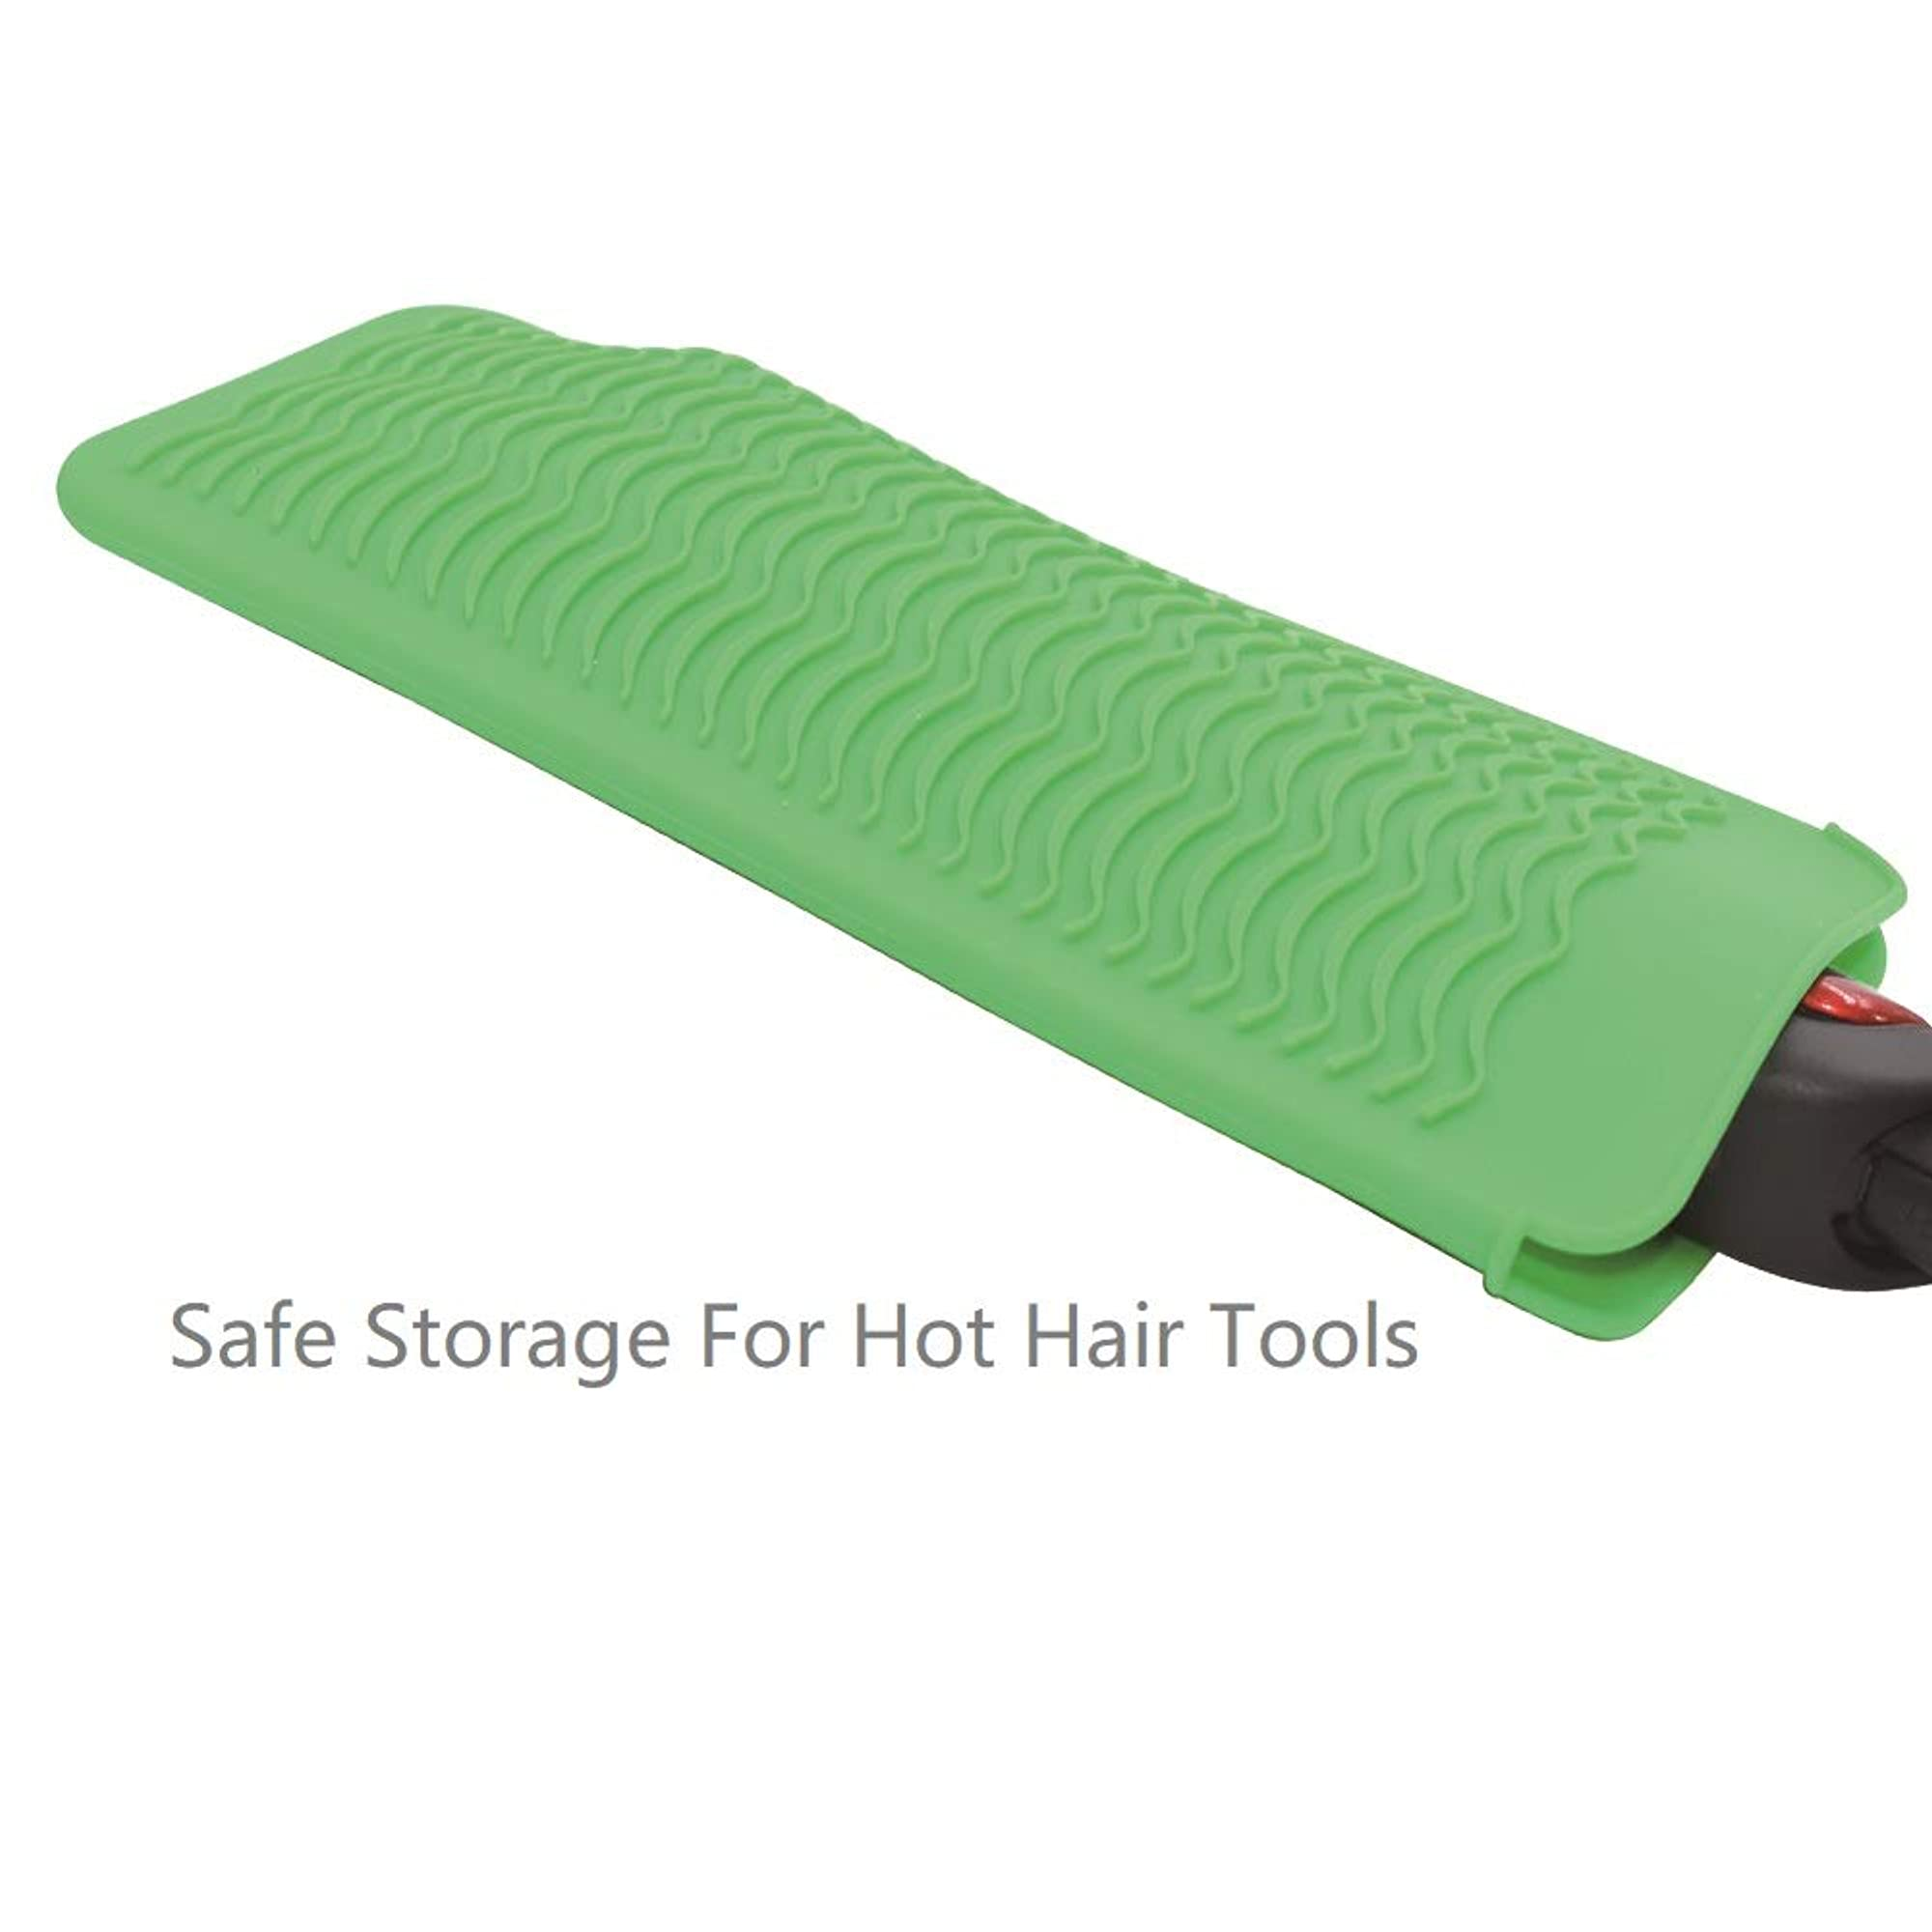 Silicone Mat Pouch For Curling Flat Iron